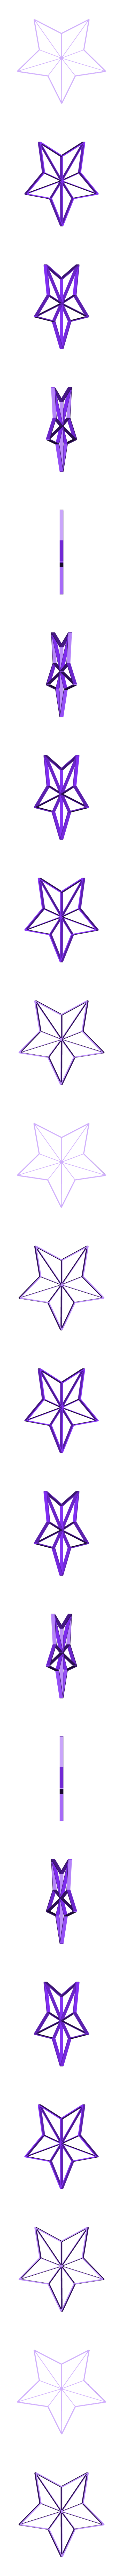 customized_origami_christmas_star_no1.stl Download free STL file Customizable Origami Christmas Star No. 1 • Template to 3D print, MightyNozzle